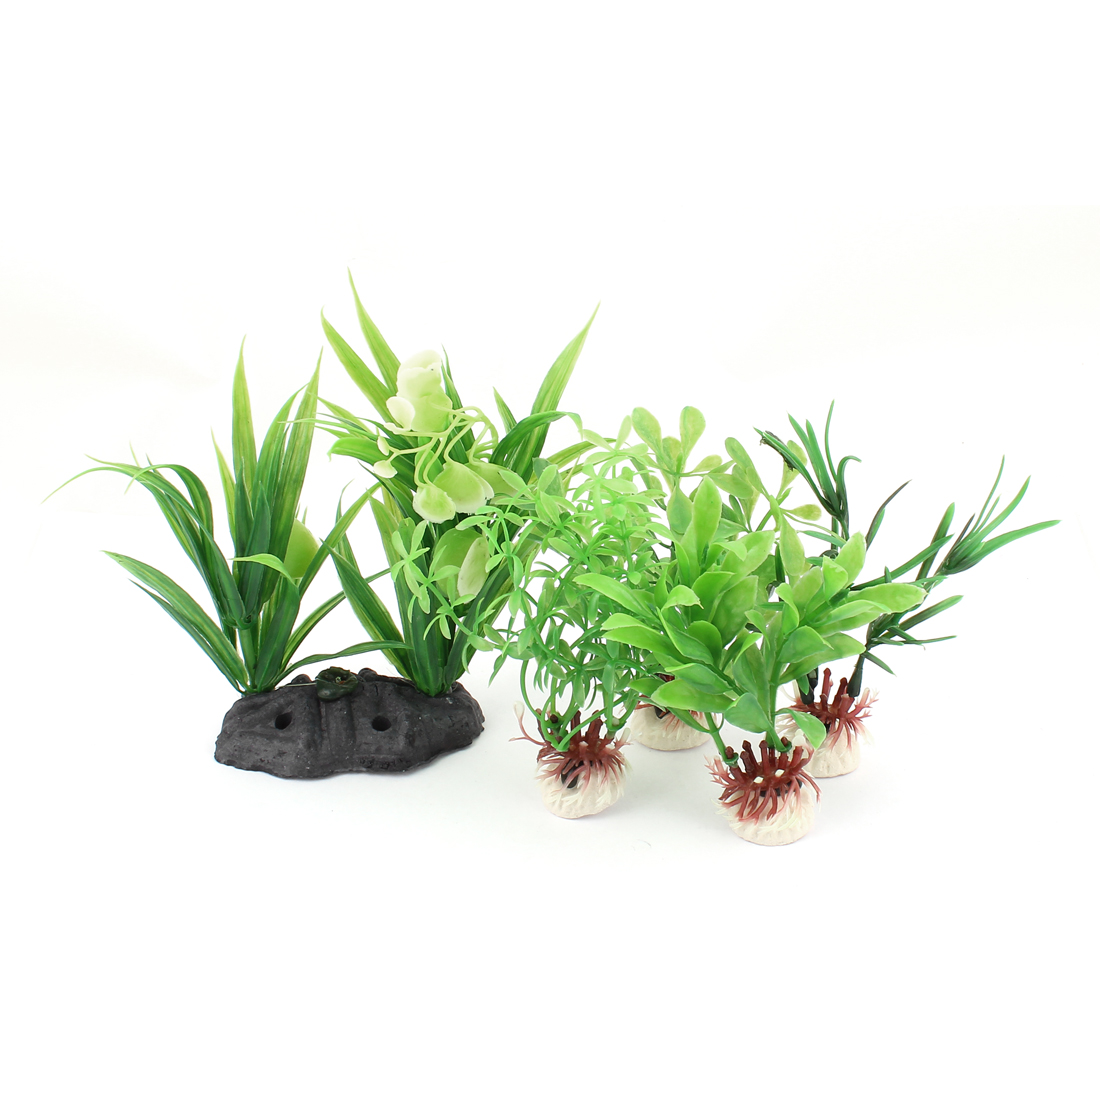 Plastic Landscape Aquascaping Aquarium Plant Underwater Grass Decor 5PCS